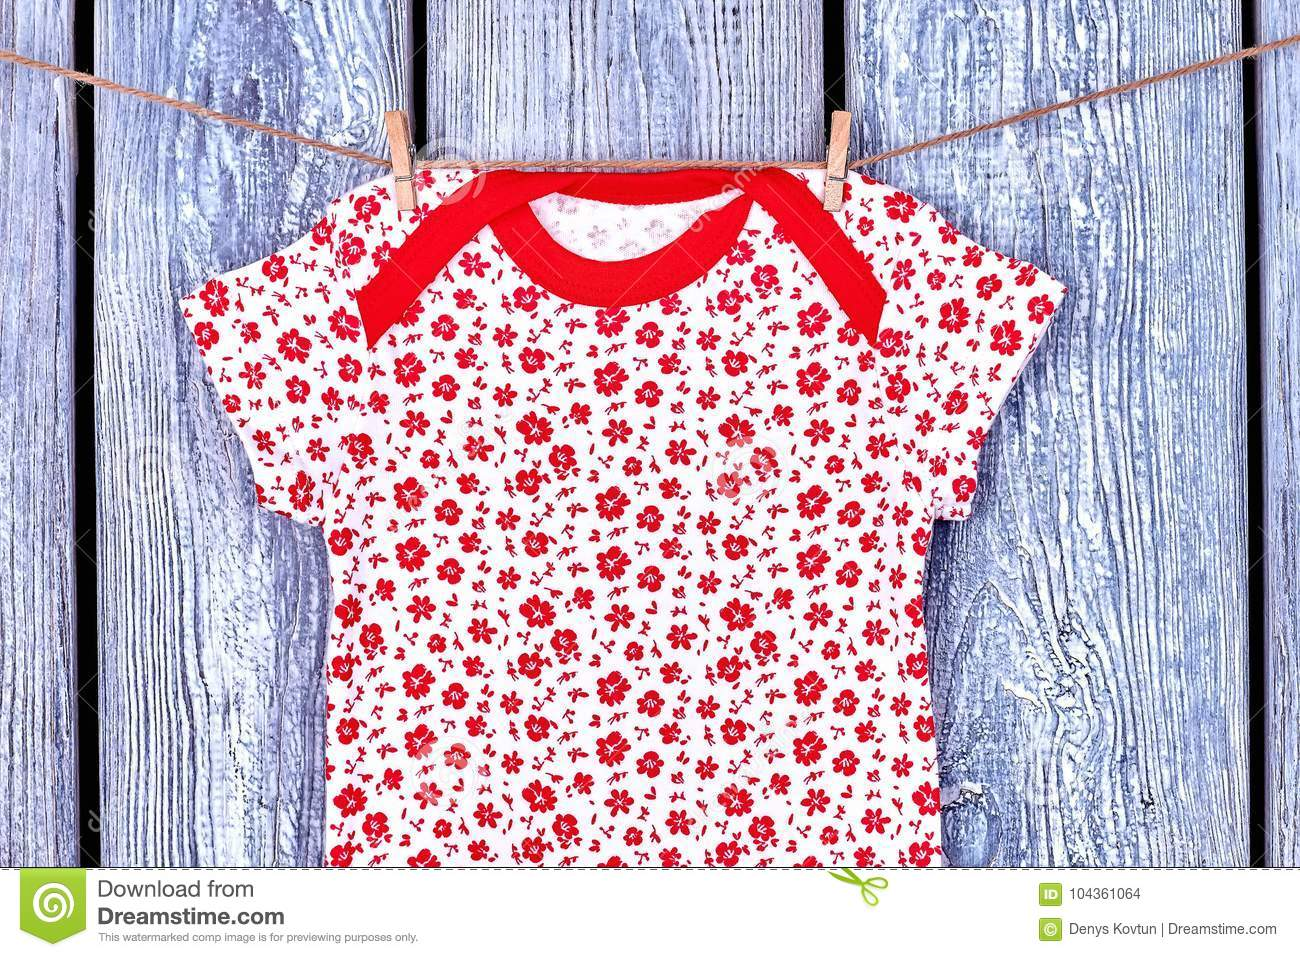 50e278ba2 Infant Girl T-shirt Hanging On Rope. Stock Photo - Image of clothes ...